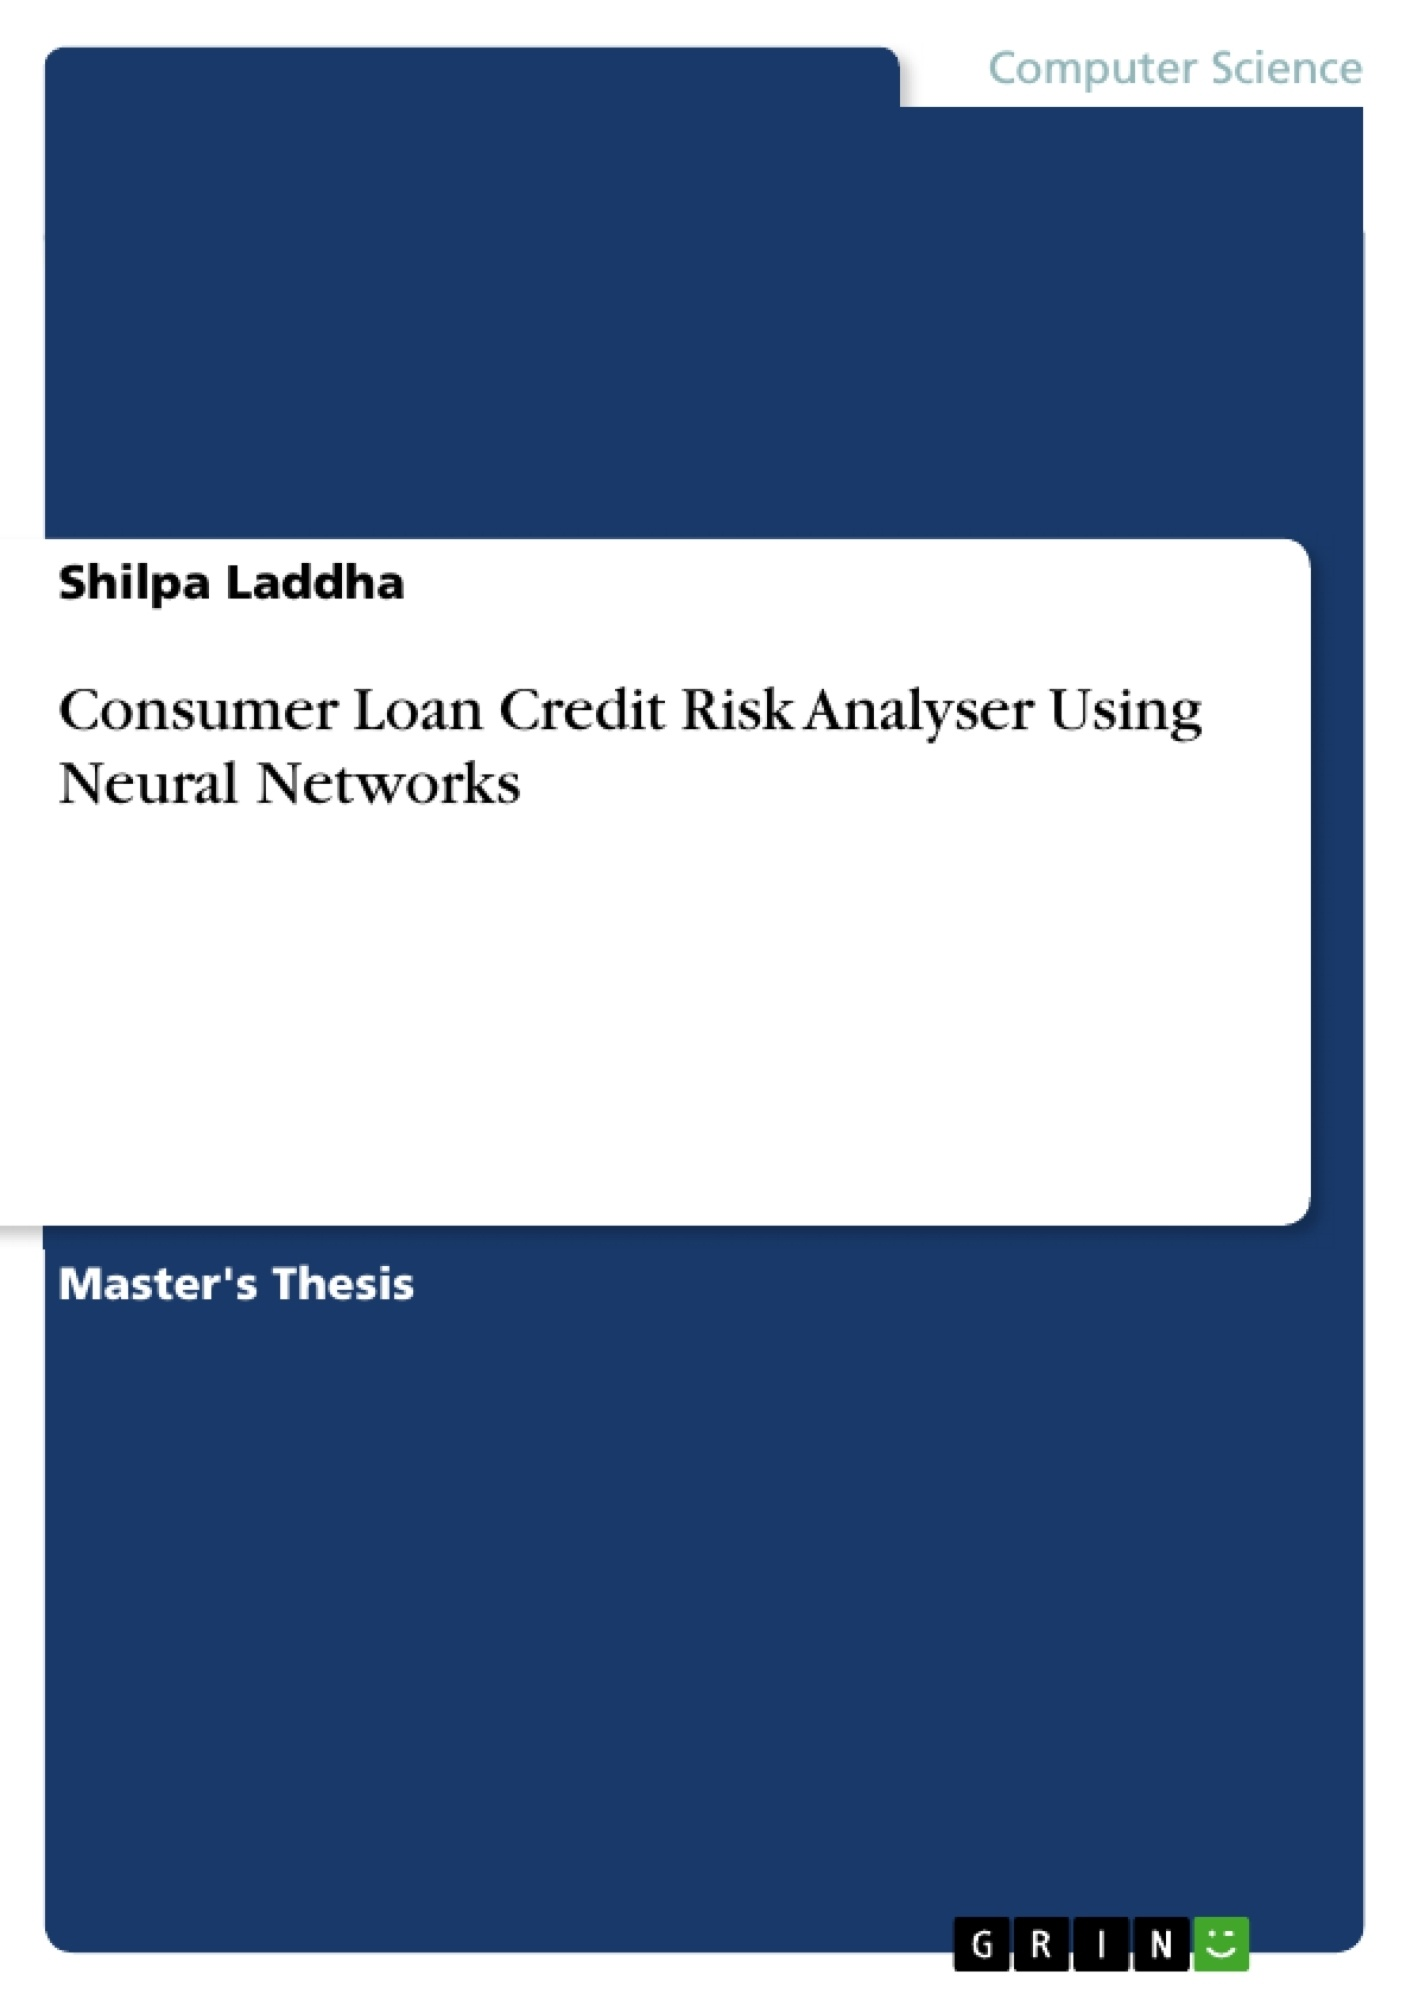 Title: Consumer Loan Credit Risk Analyser Using Neural Networks